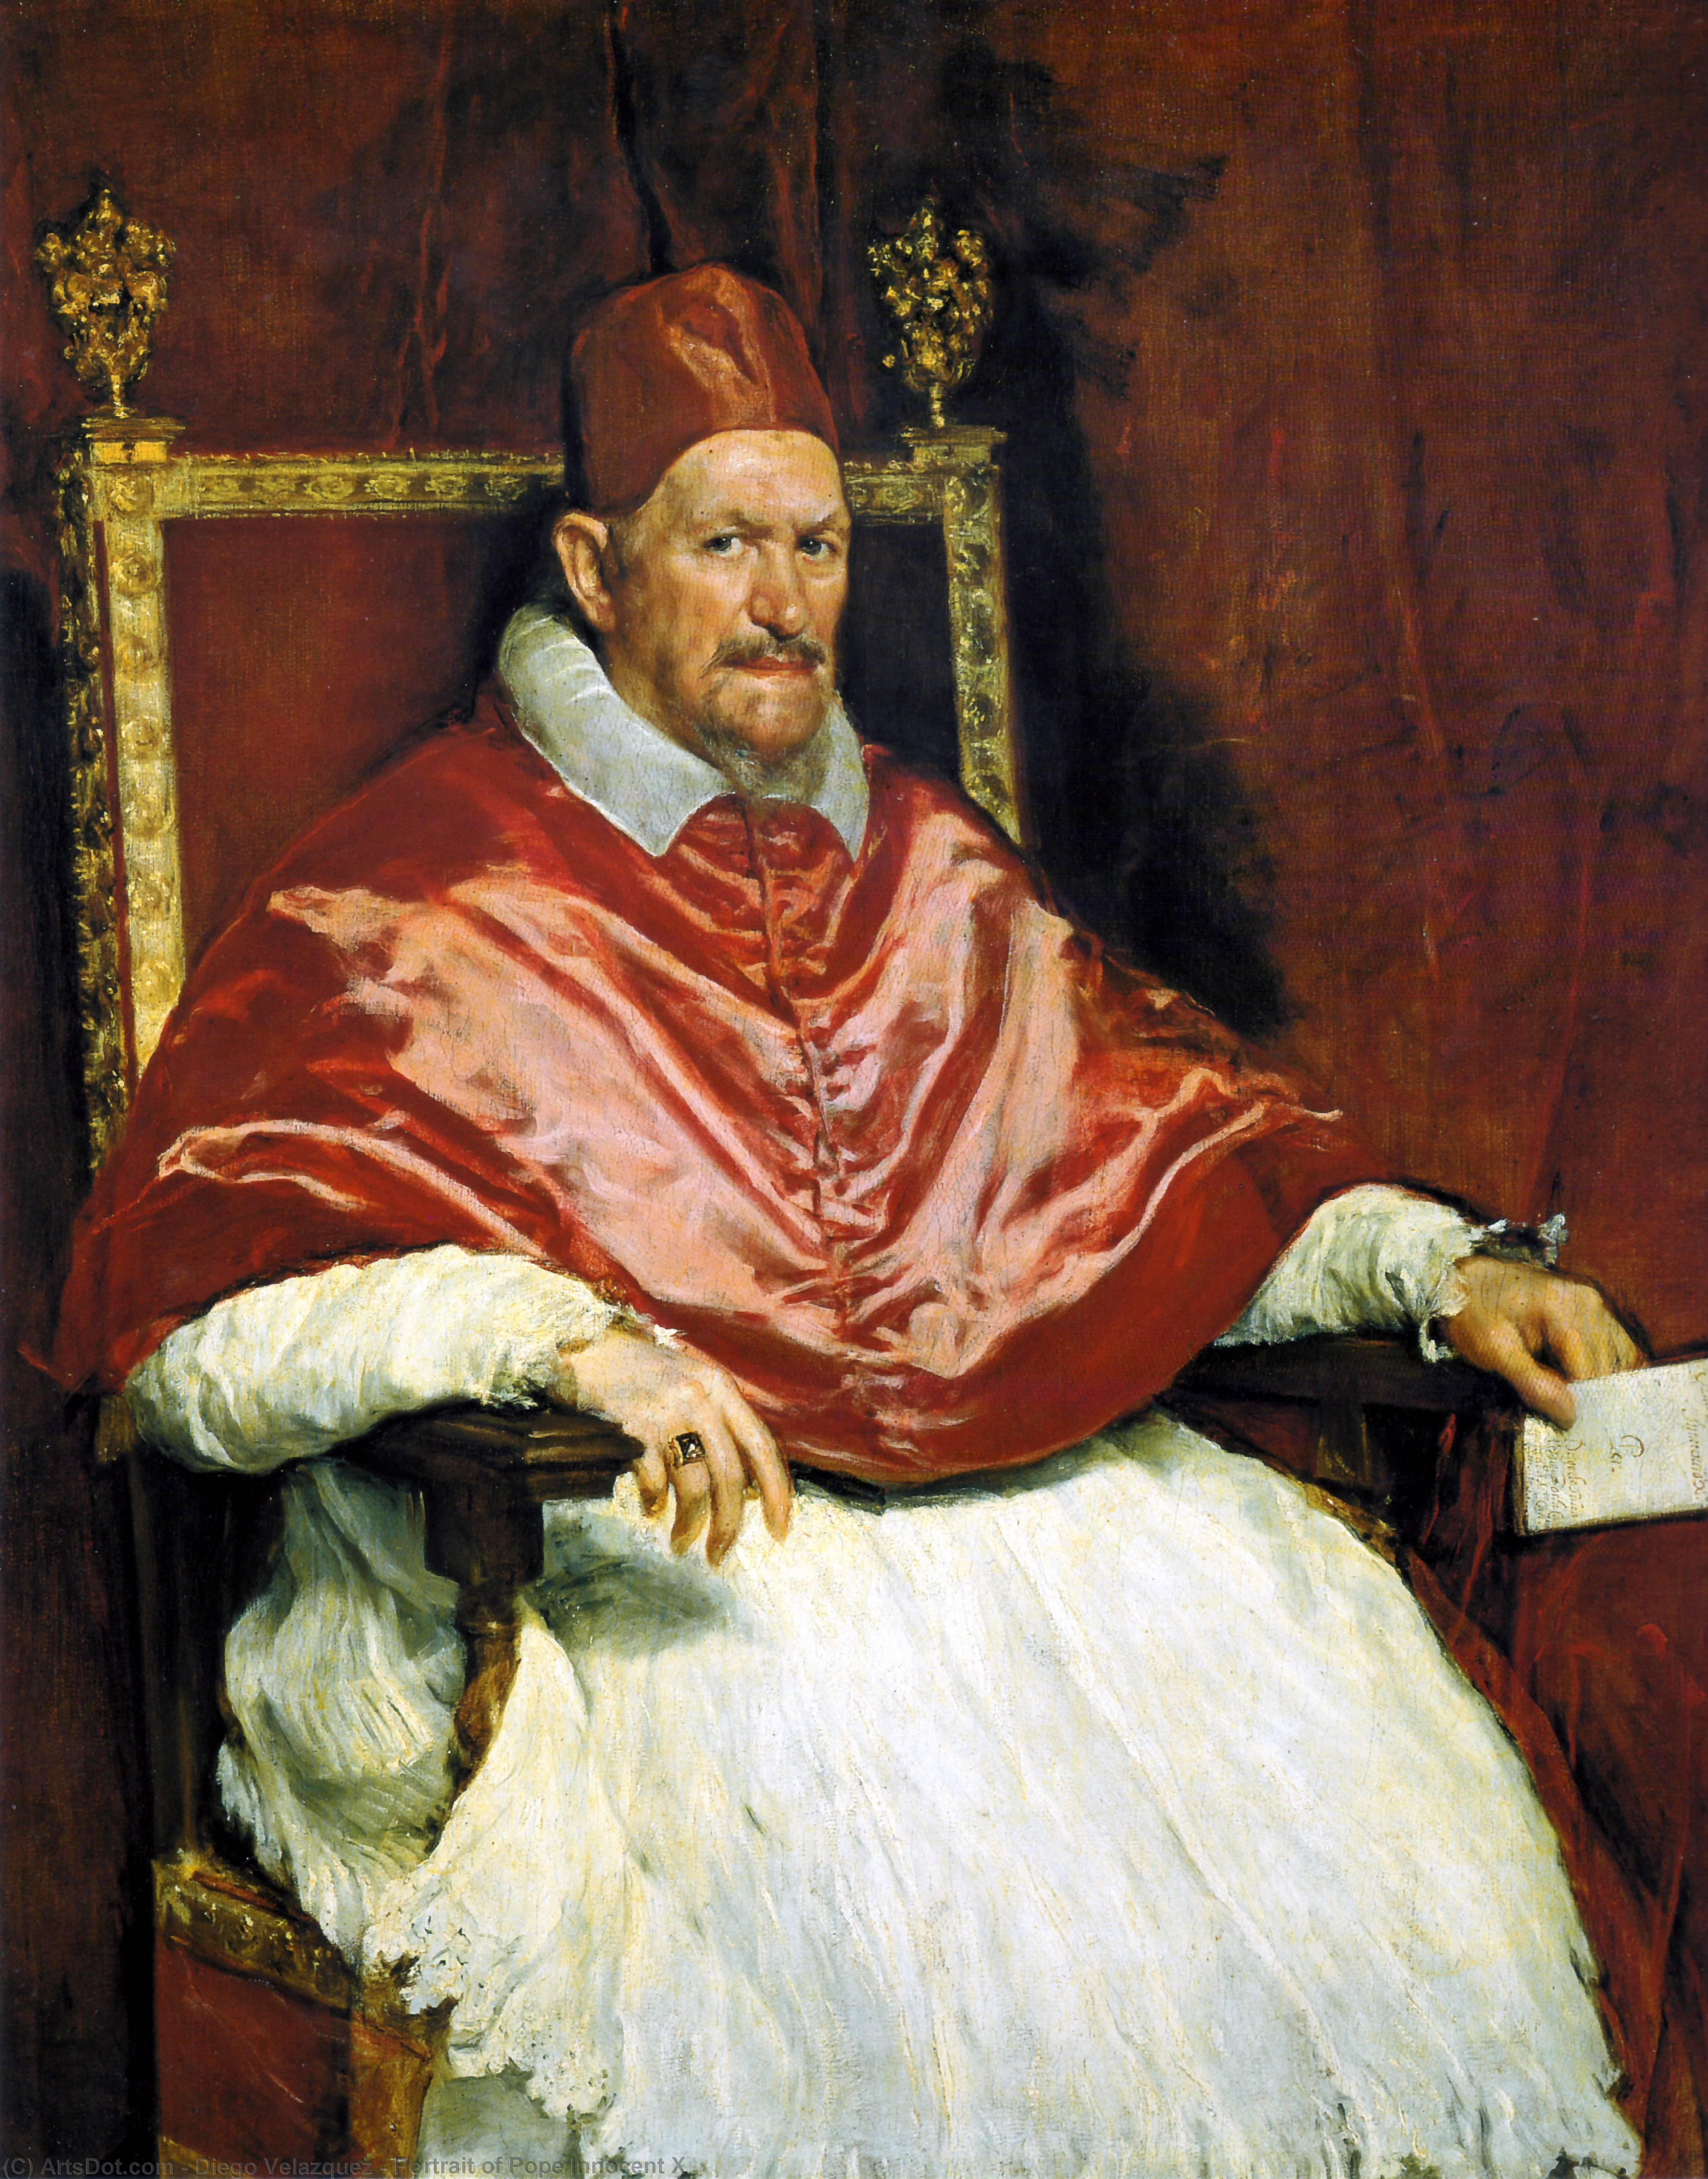 Wikioo.org - The Encyclopedia of Fine Arts - Painting, Artwork by Diego Velazquez - Portrait of Pope Innocent X